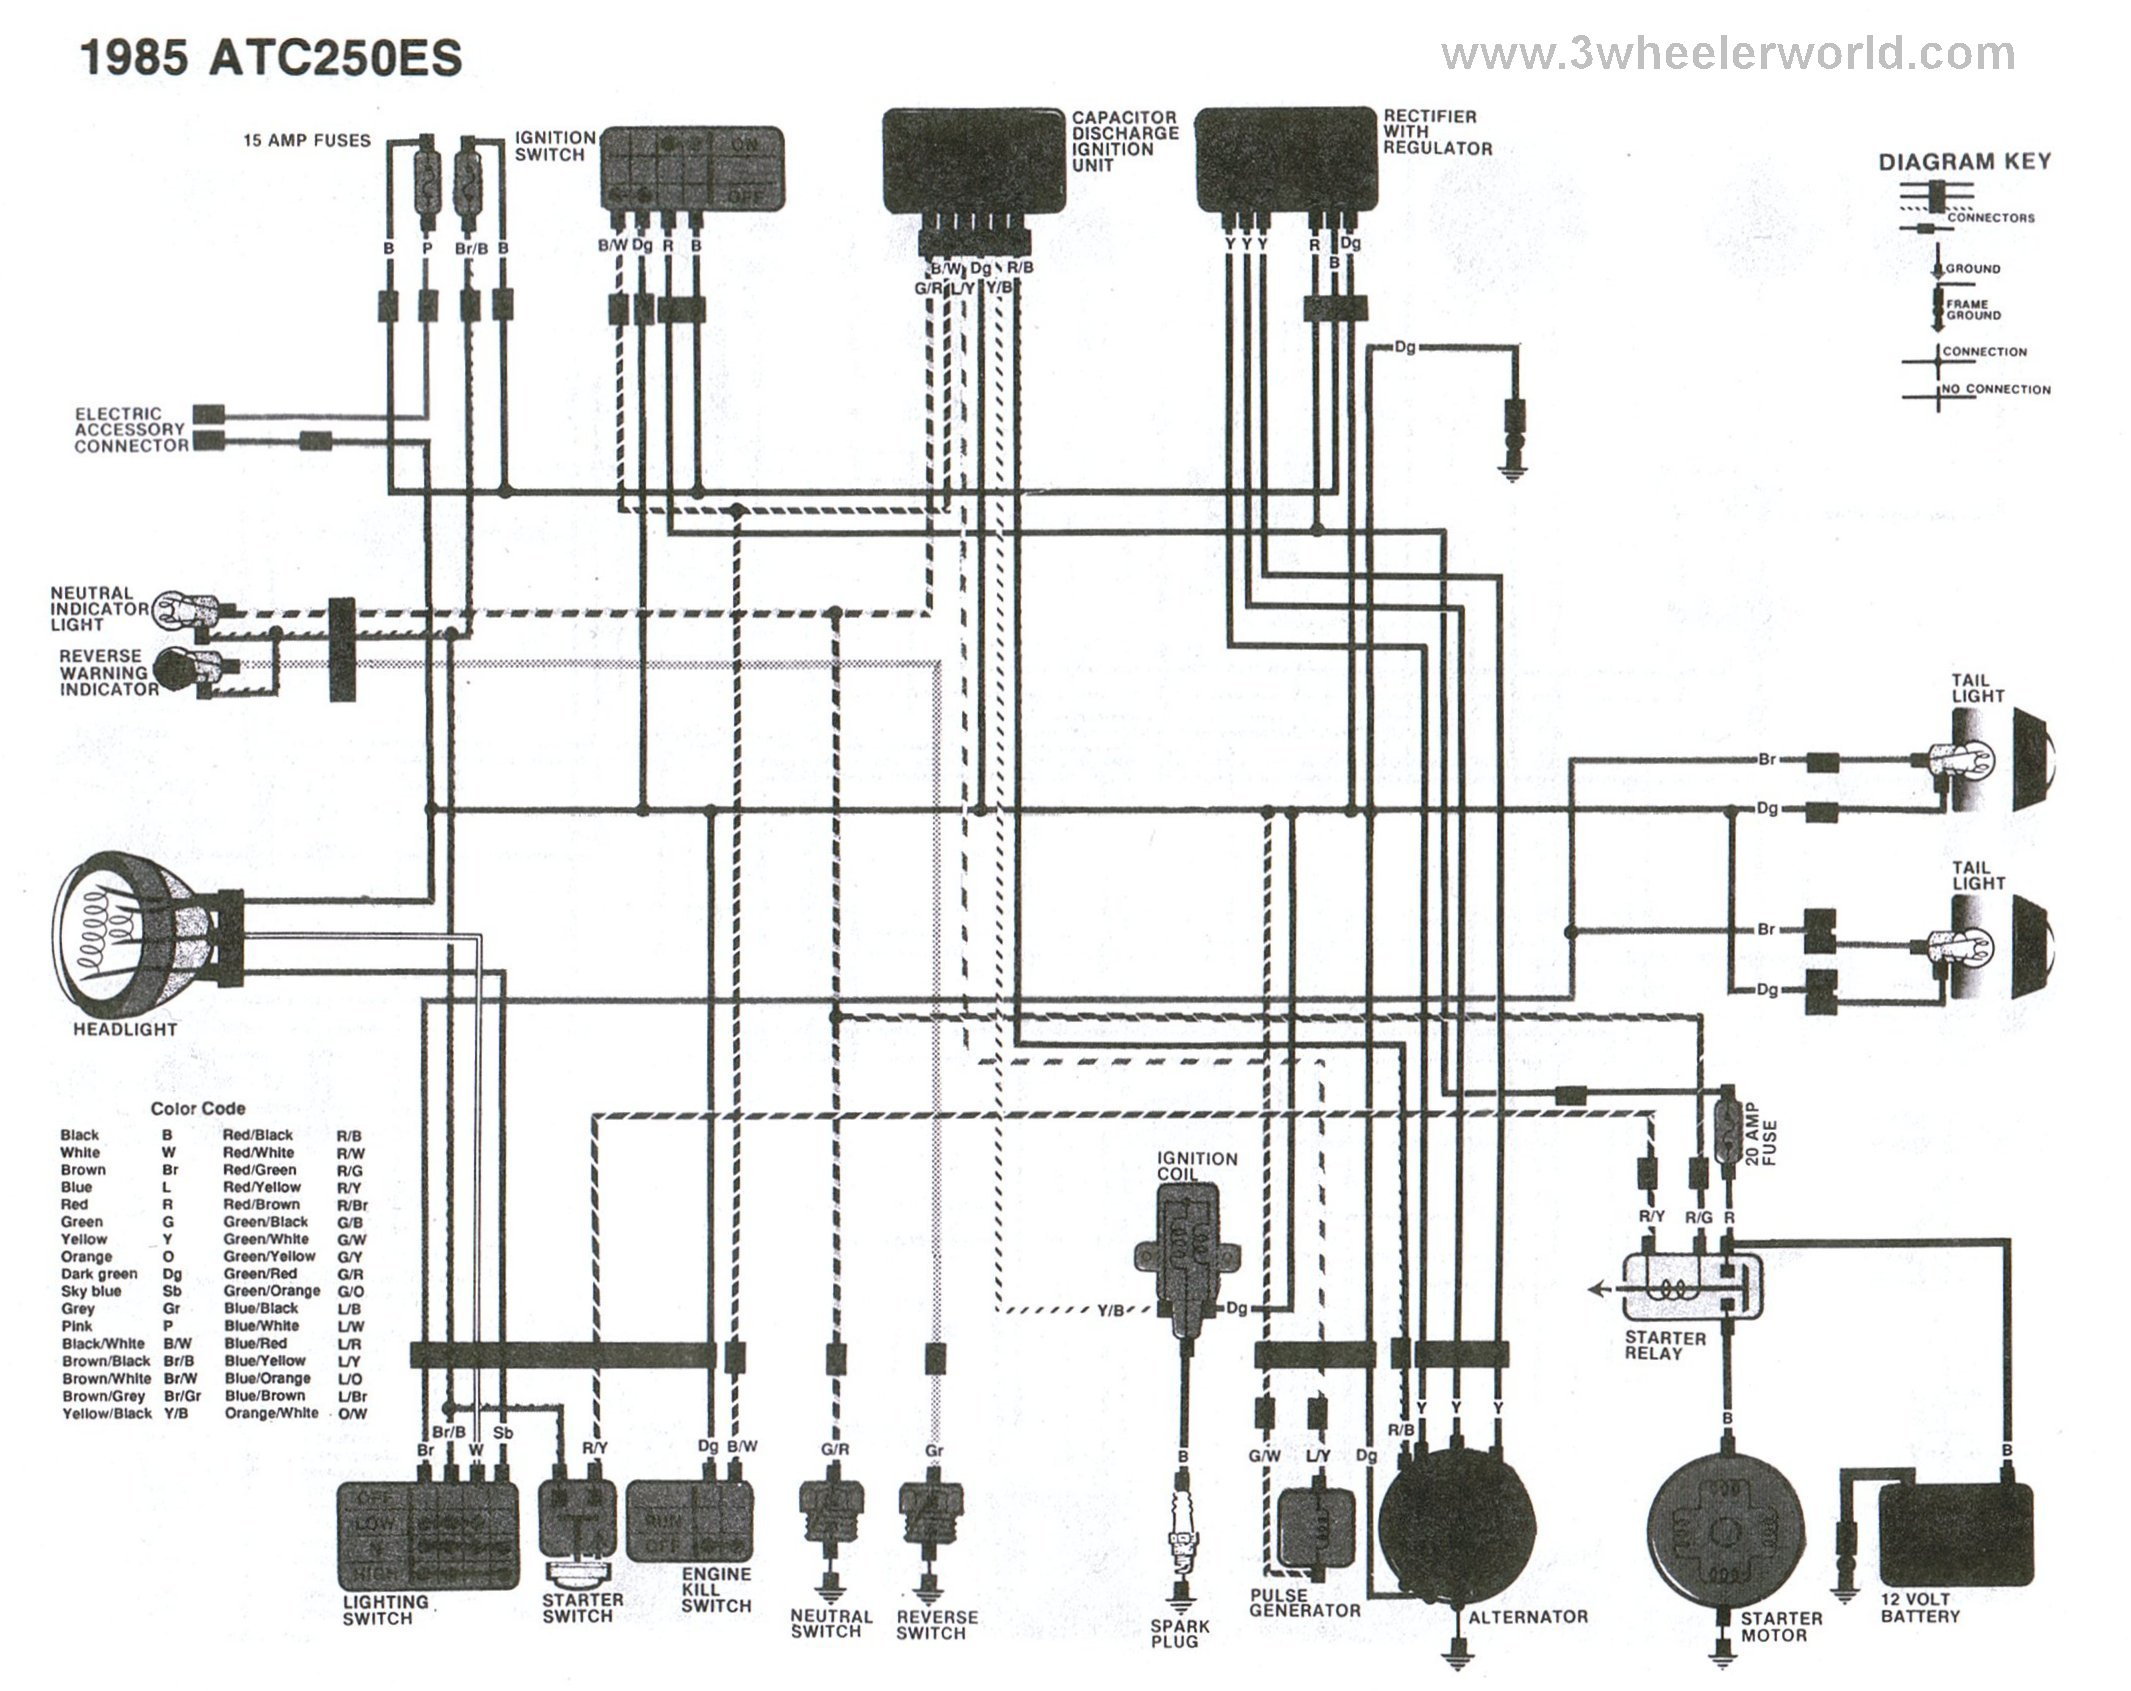 86 Honda Trx 125 Wiring Diagram Honda 300 TRX Electrical